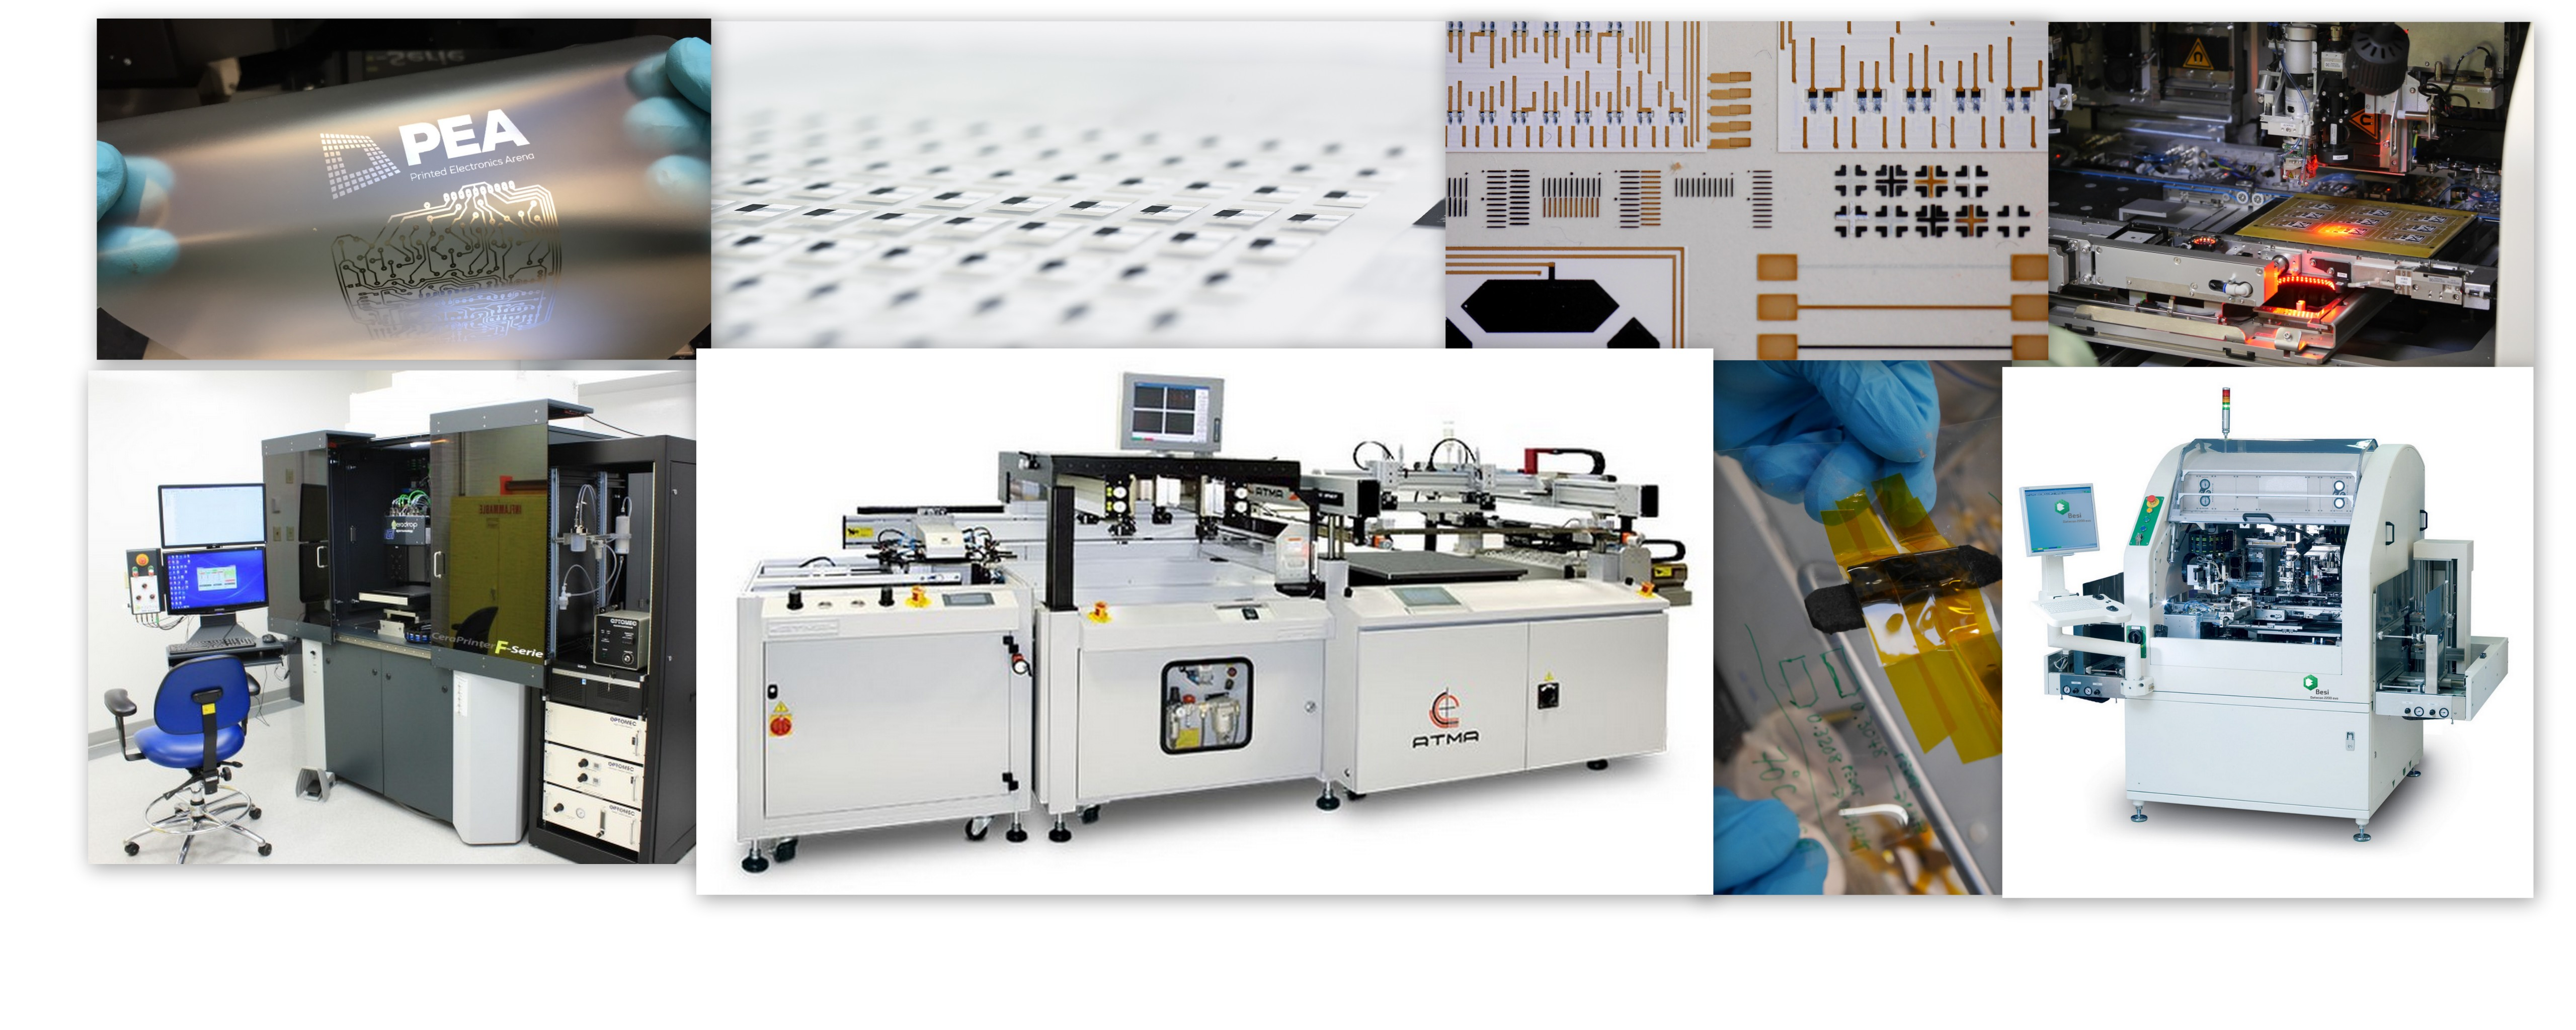 Printed Electronics Rise Circuit Board Manufacturing Industry Providing Our Focus Is To Bring Research And Innovation Market Create Sustainable Realistic Processes For Production At The Pea M We Handle Small